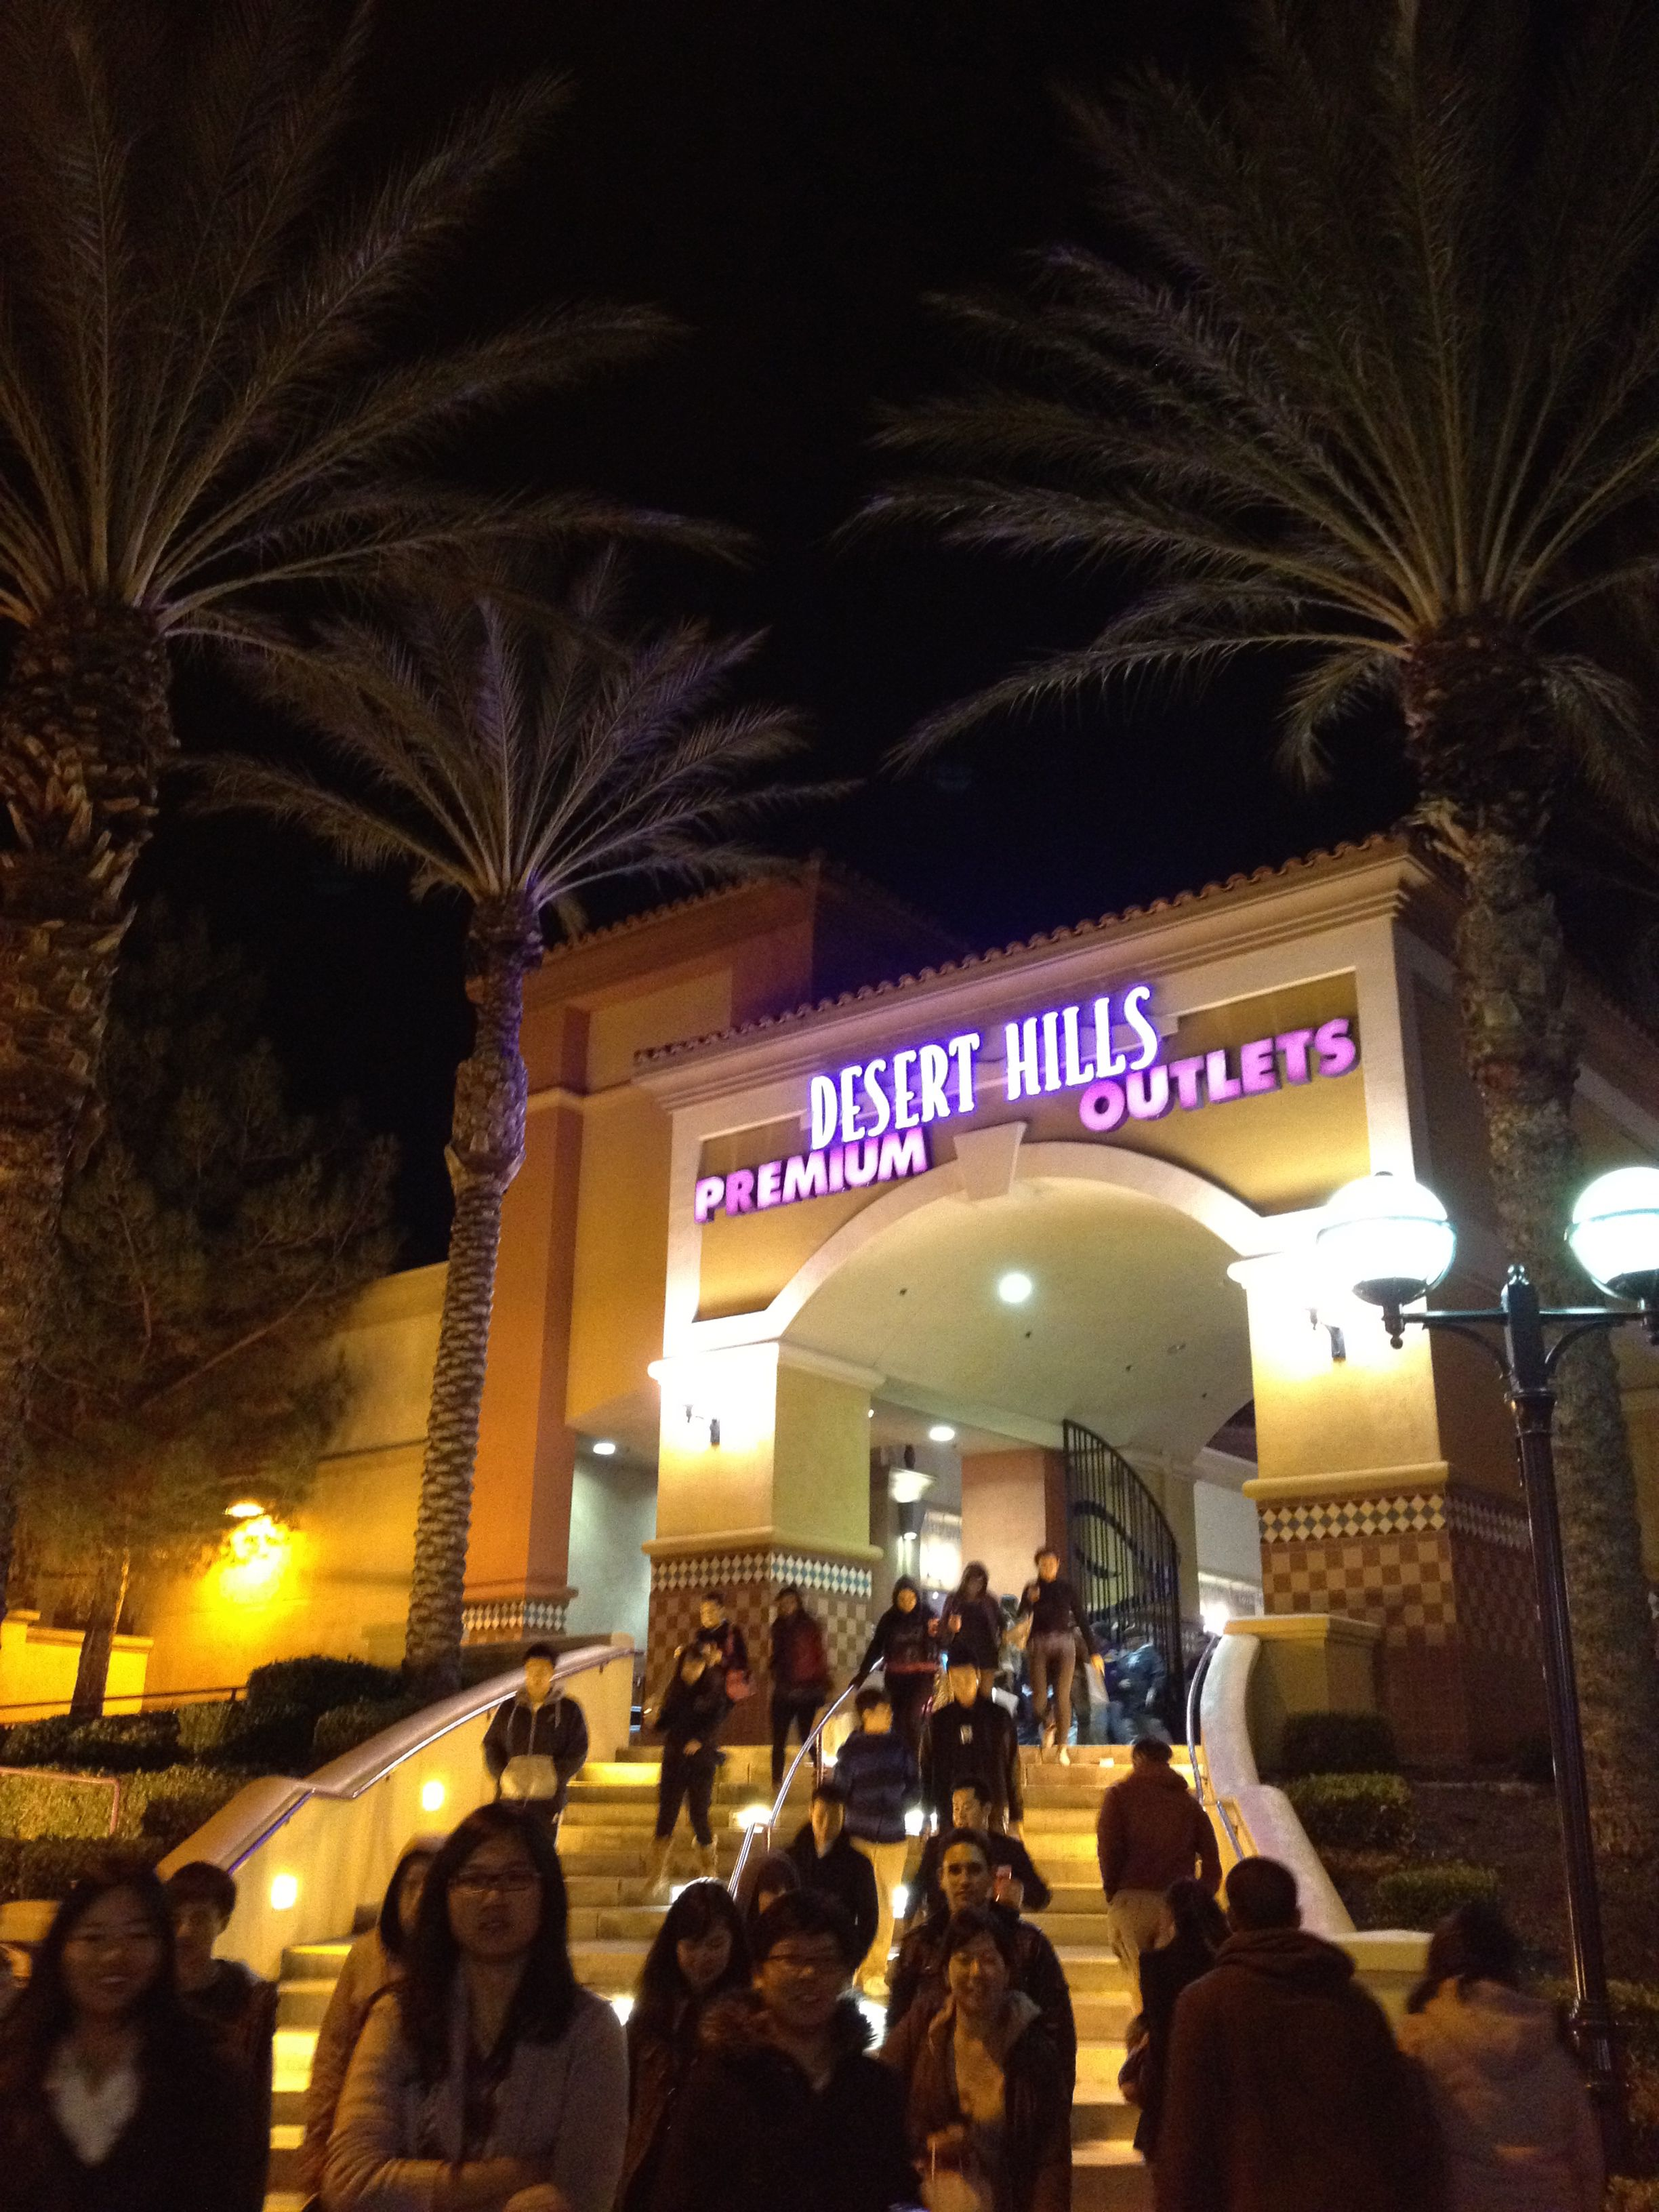 Desert Hills Premium Outlets Los Angels(ロサンゼルス)には多くのOUTLET(アウトレット)が存在します。もちろんOUTLET(アウトレット)もBlack Friday(ブラックフライデー)対象です。